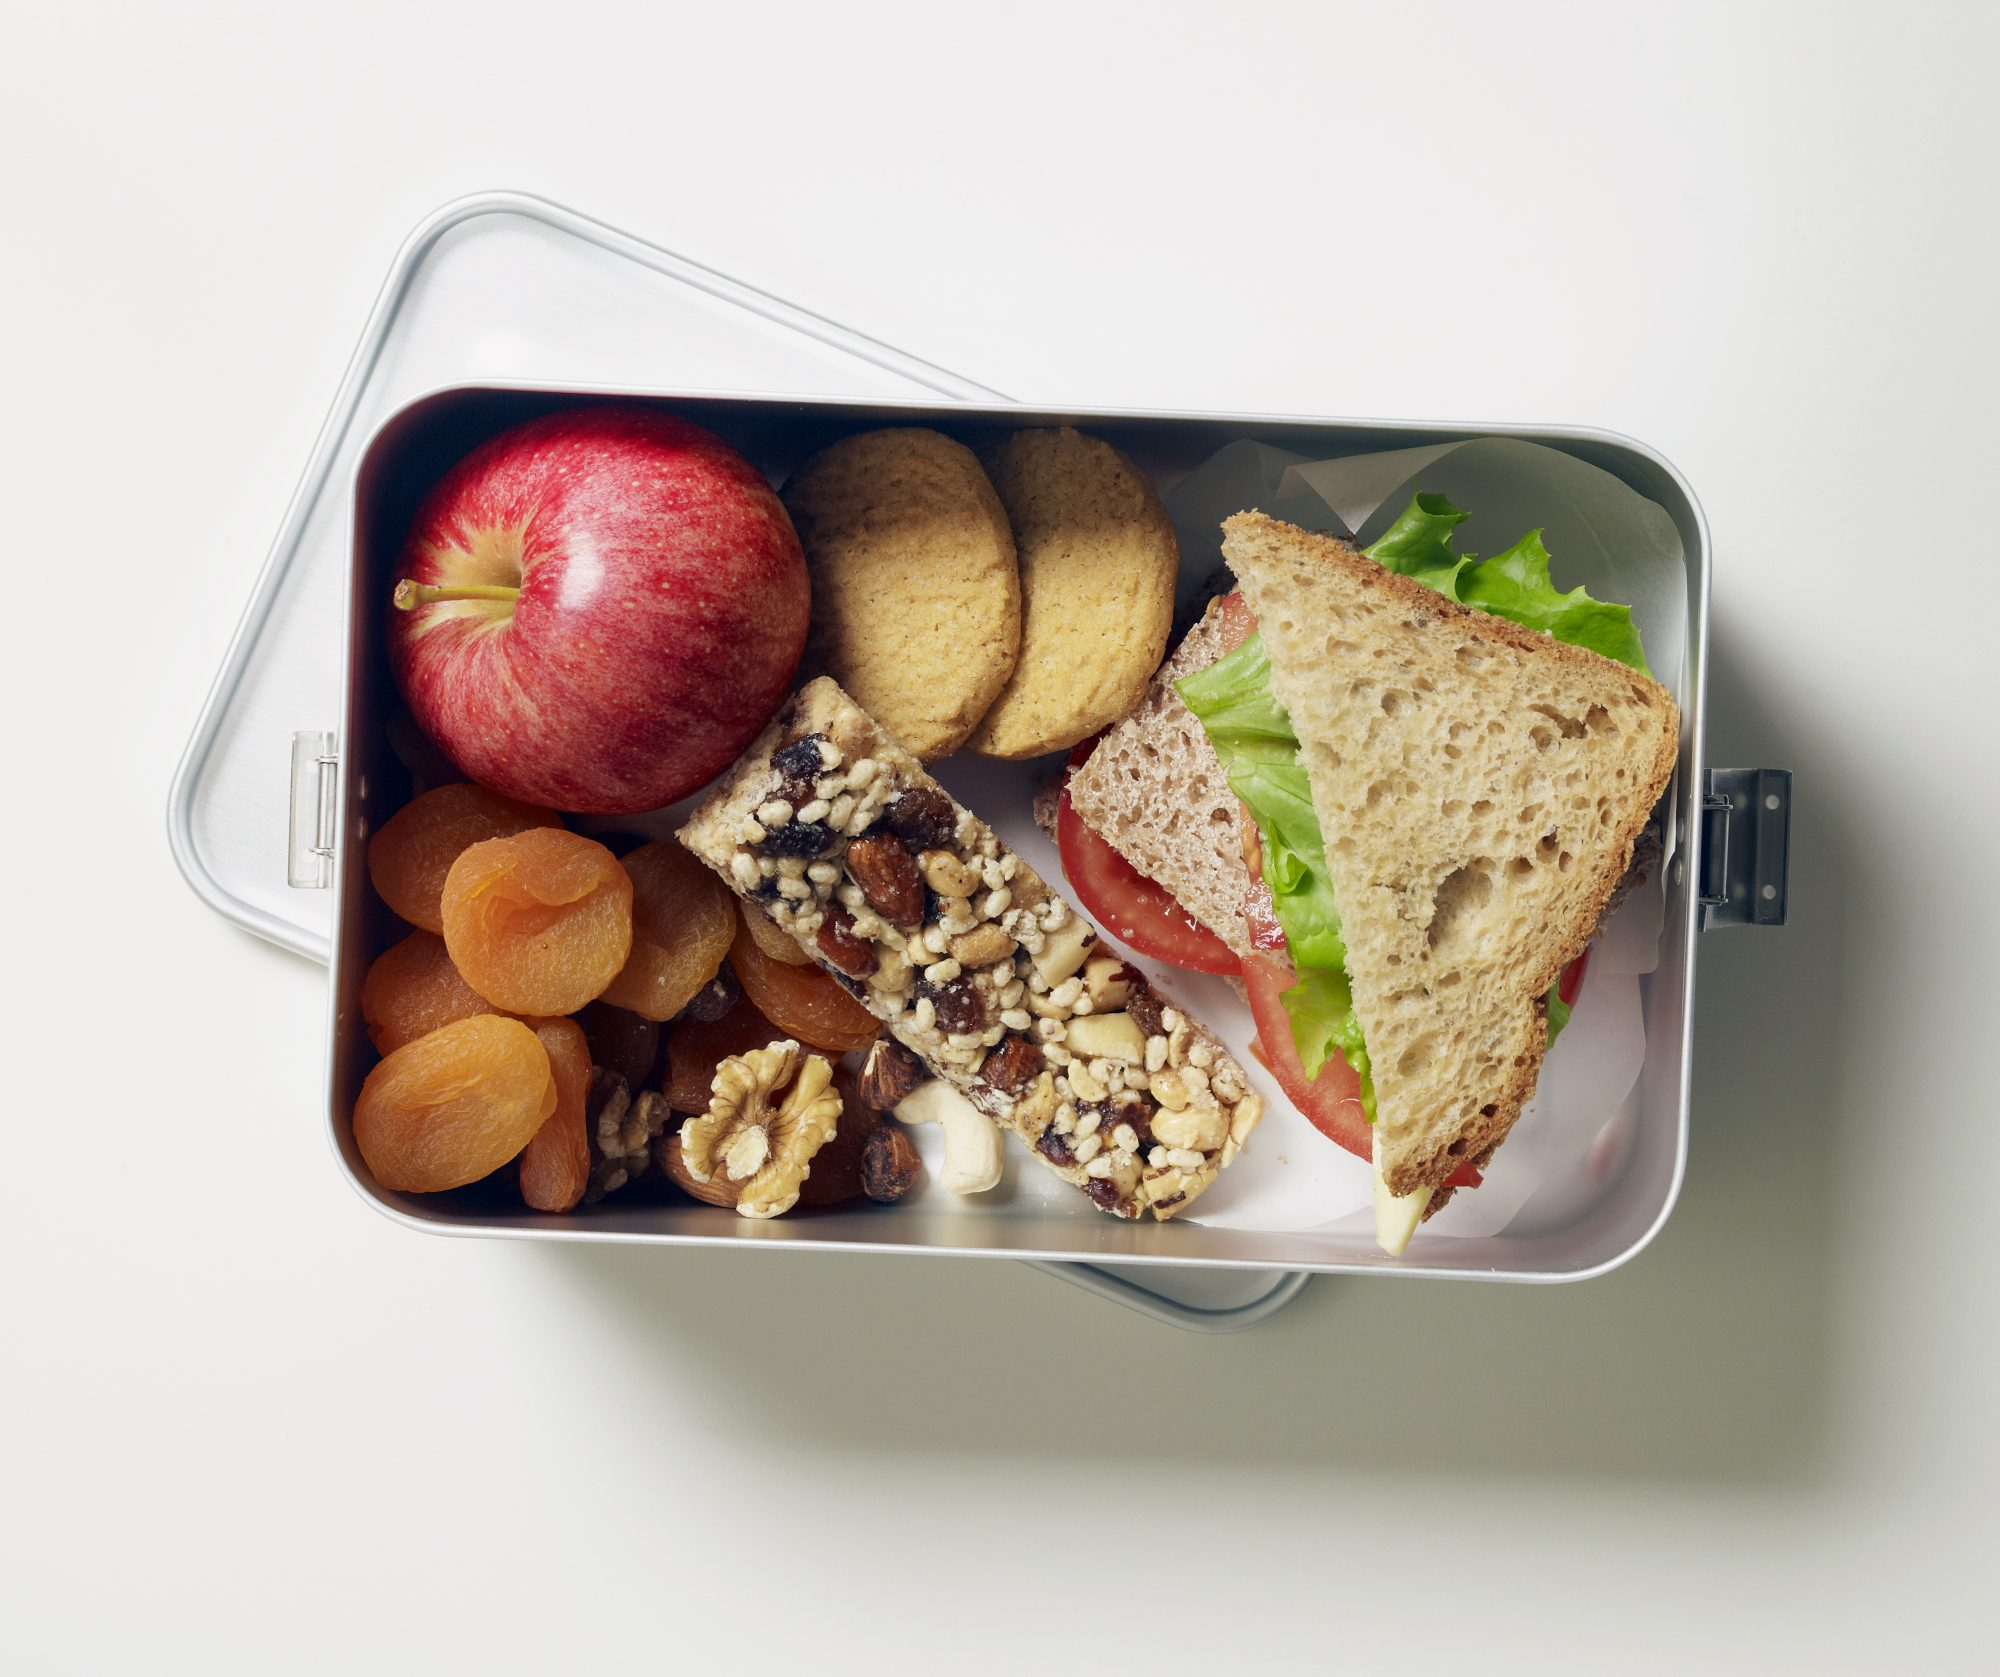 Packed Lunch for School